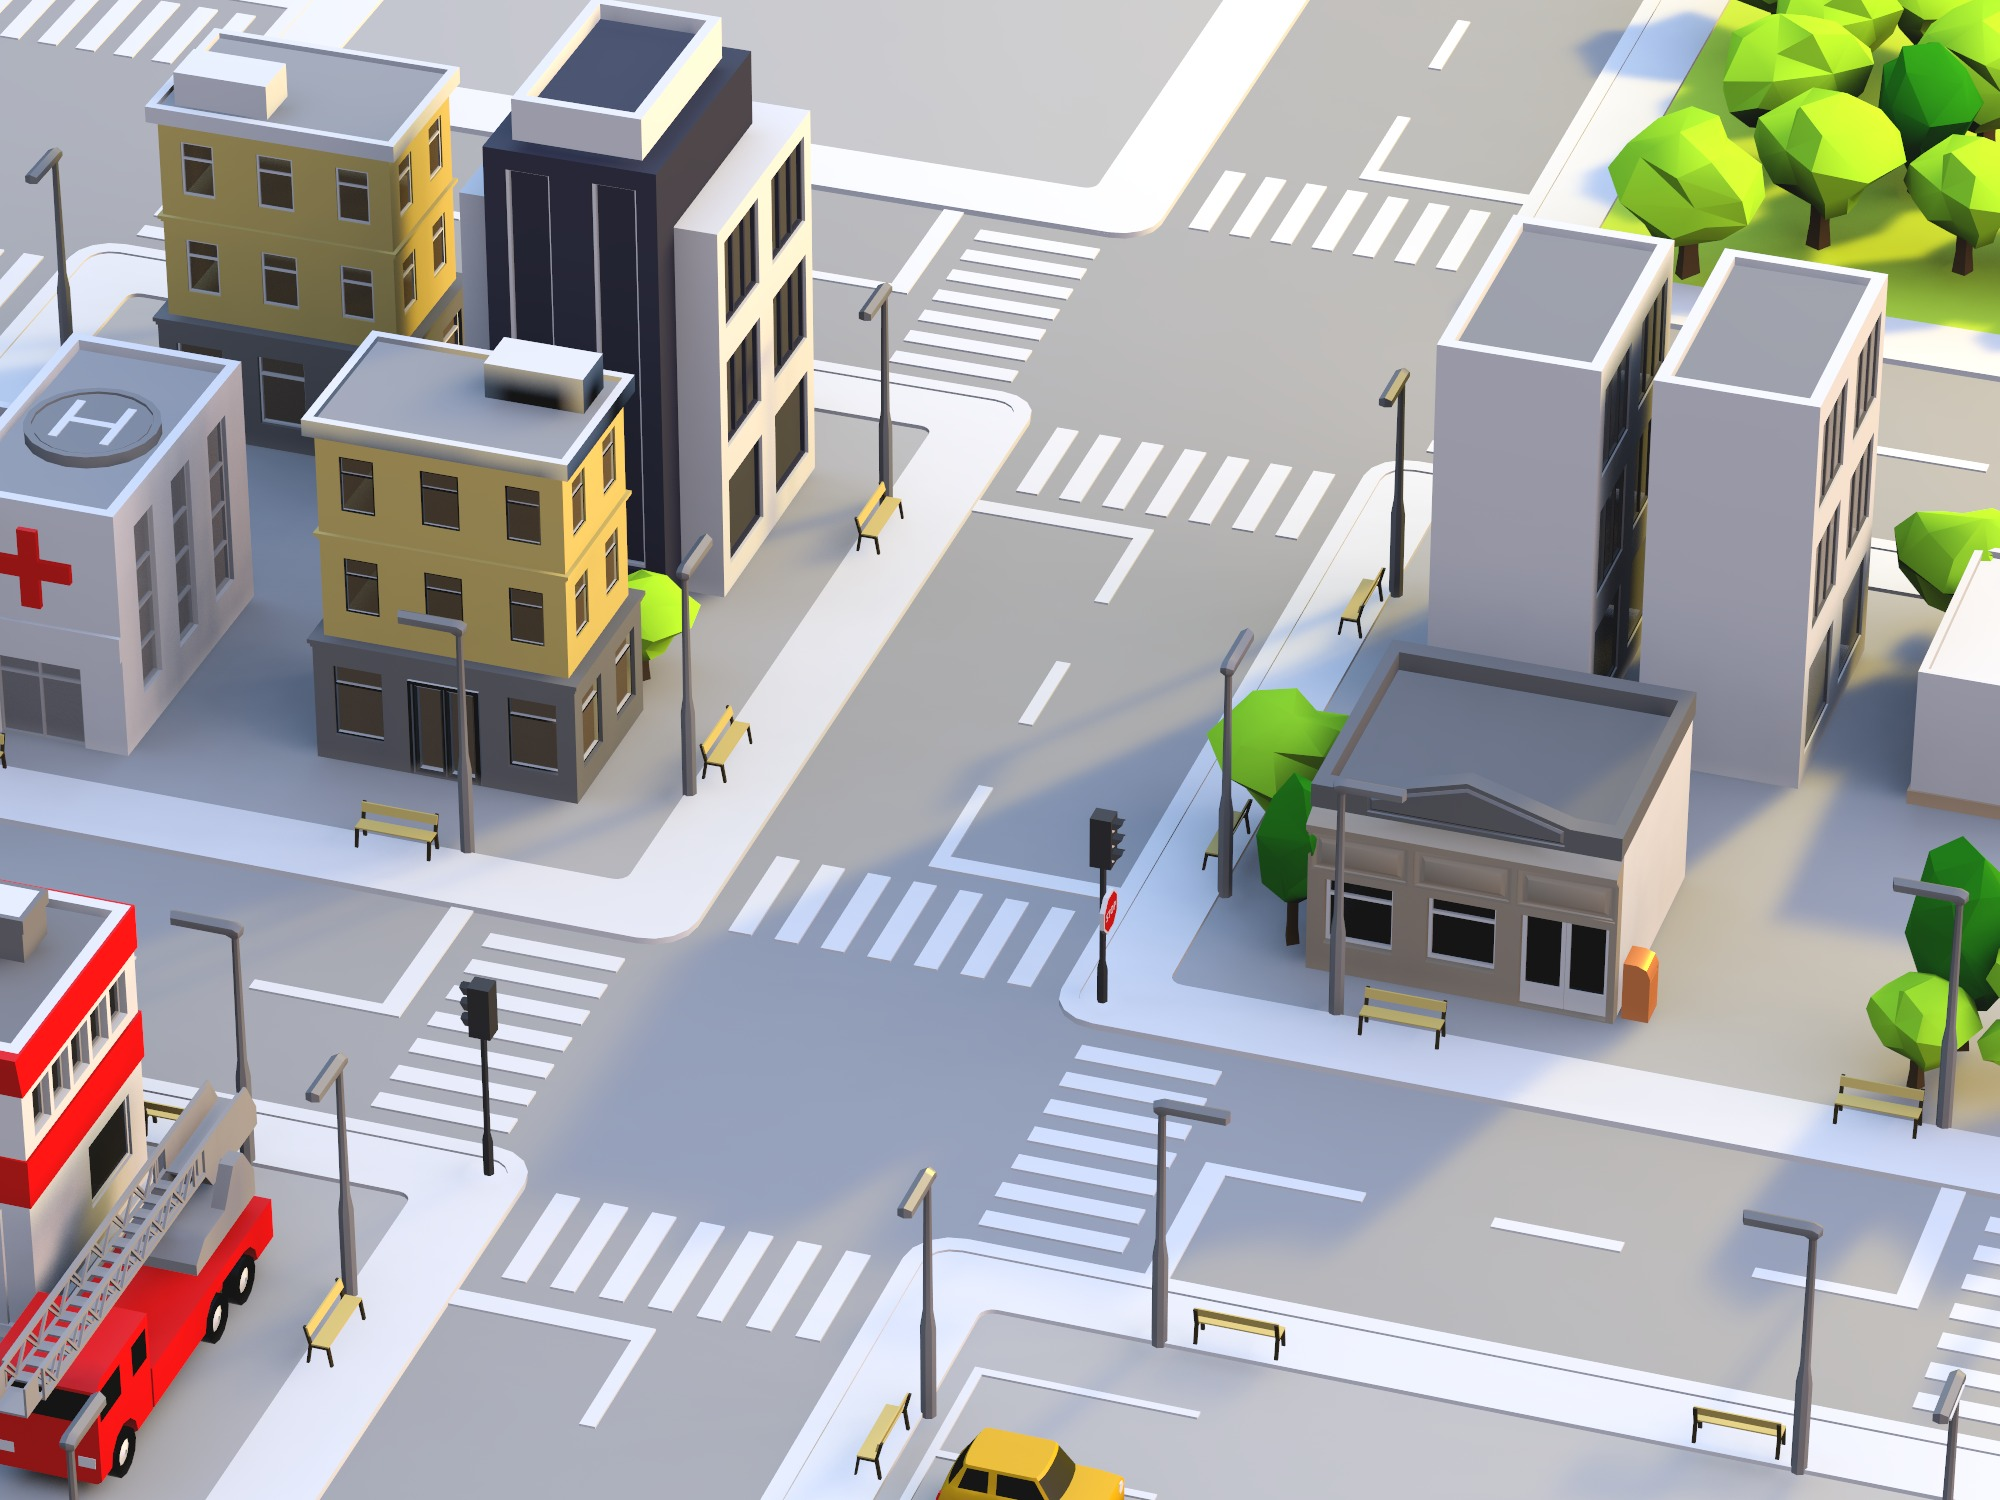 Build a city - drag and drop objects (copy) - 3D design by cyphergamezbusiness Nov 17, 2018